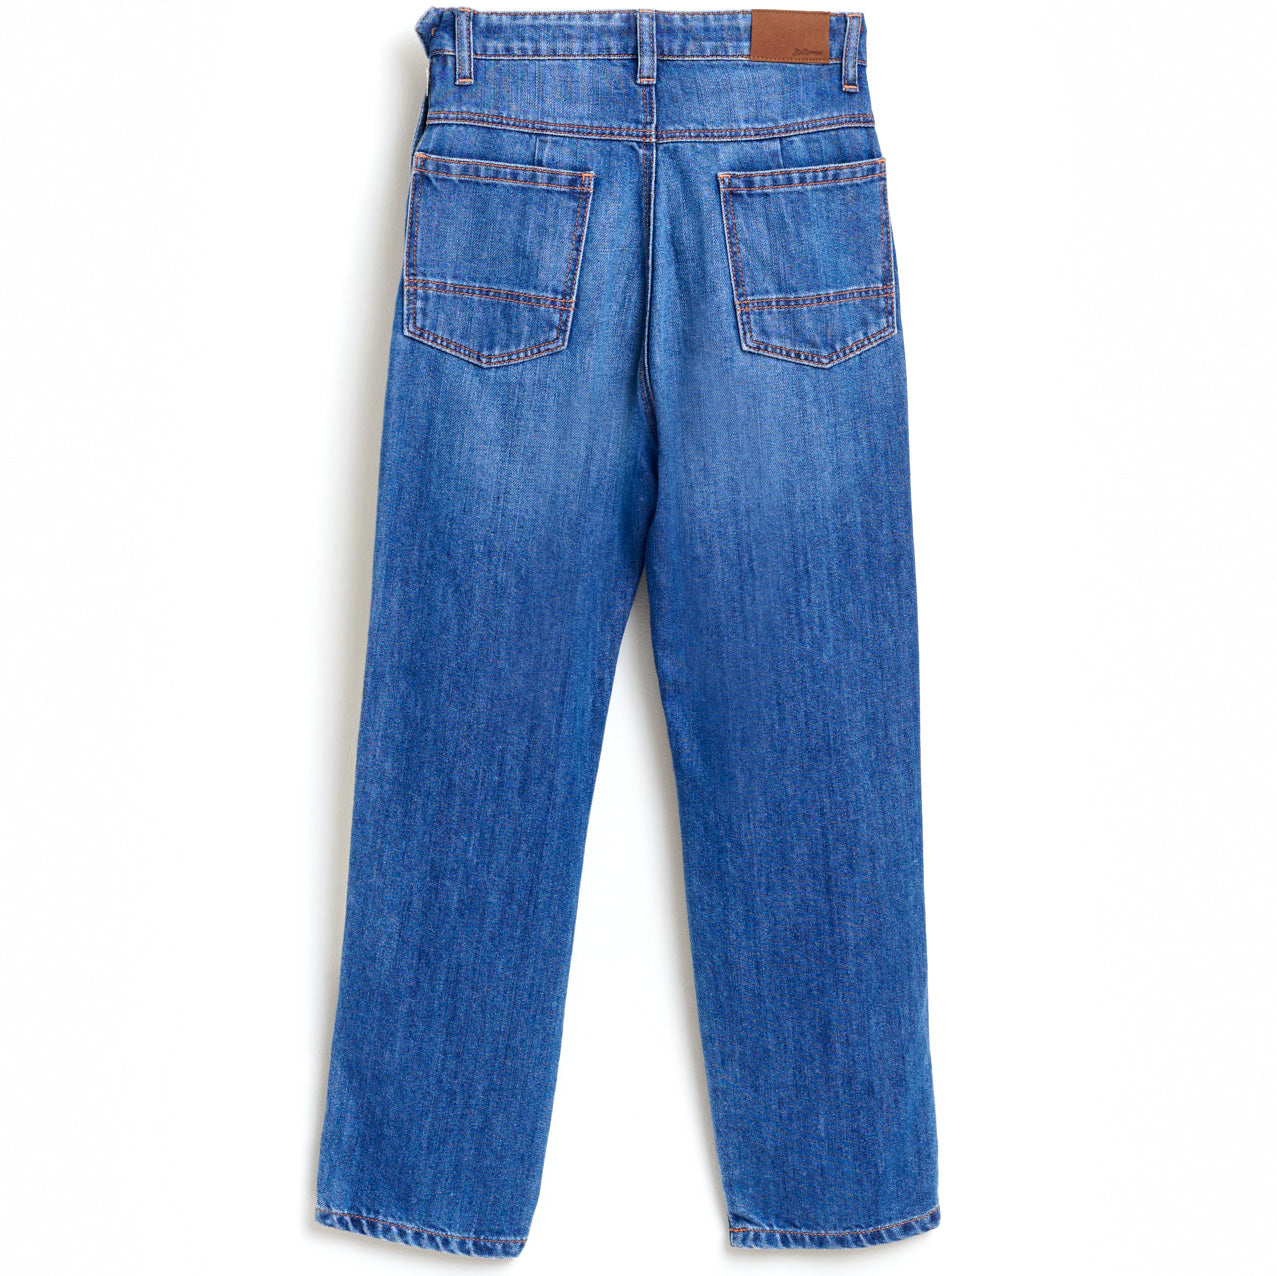 bellerose straight worn jeans